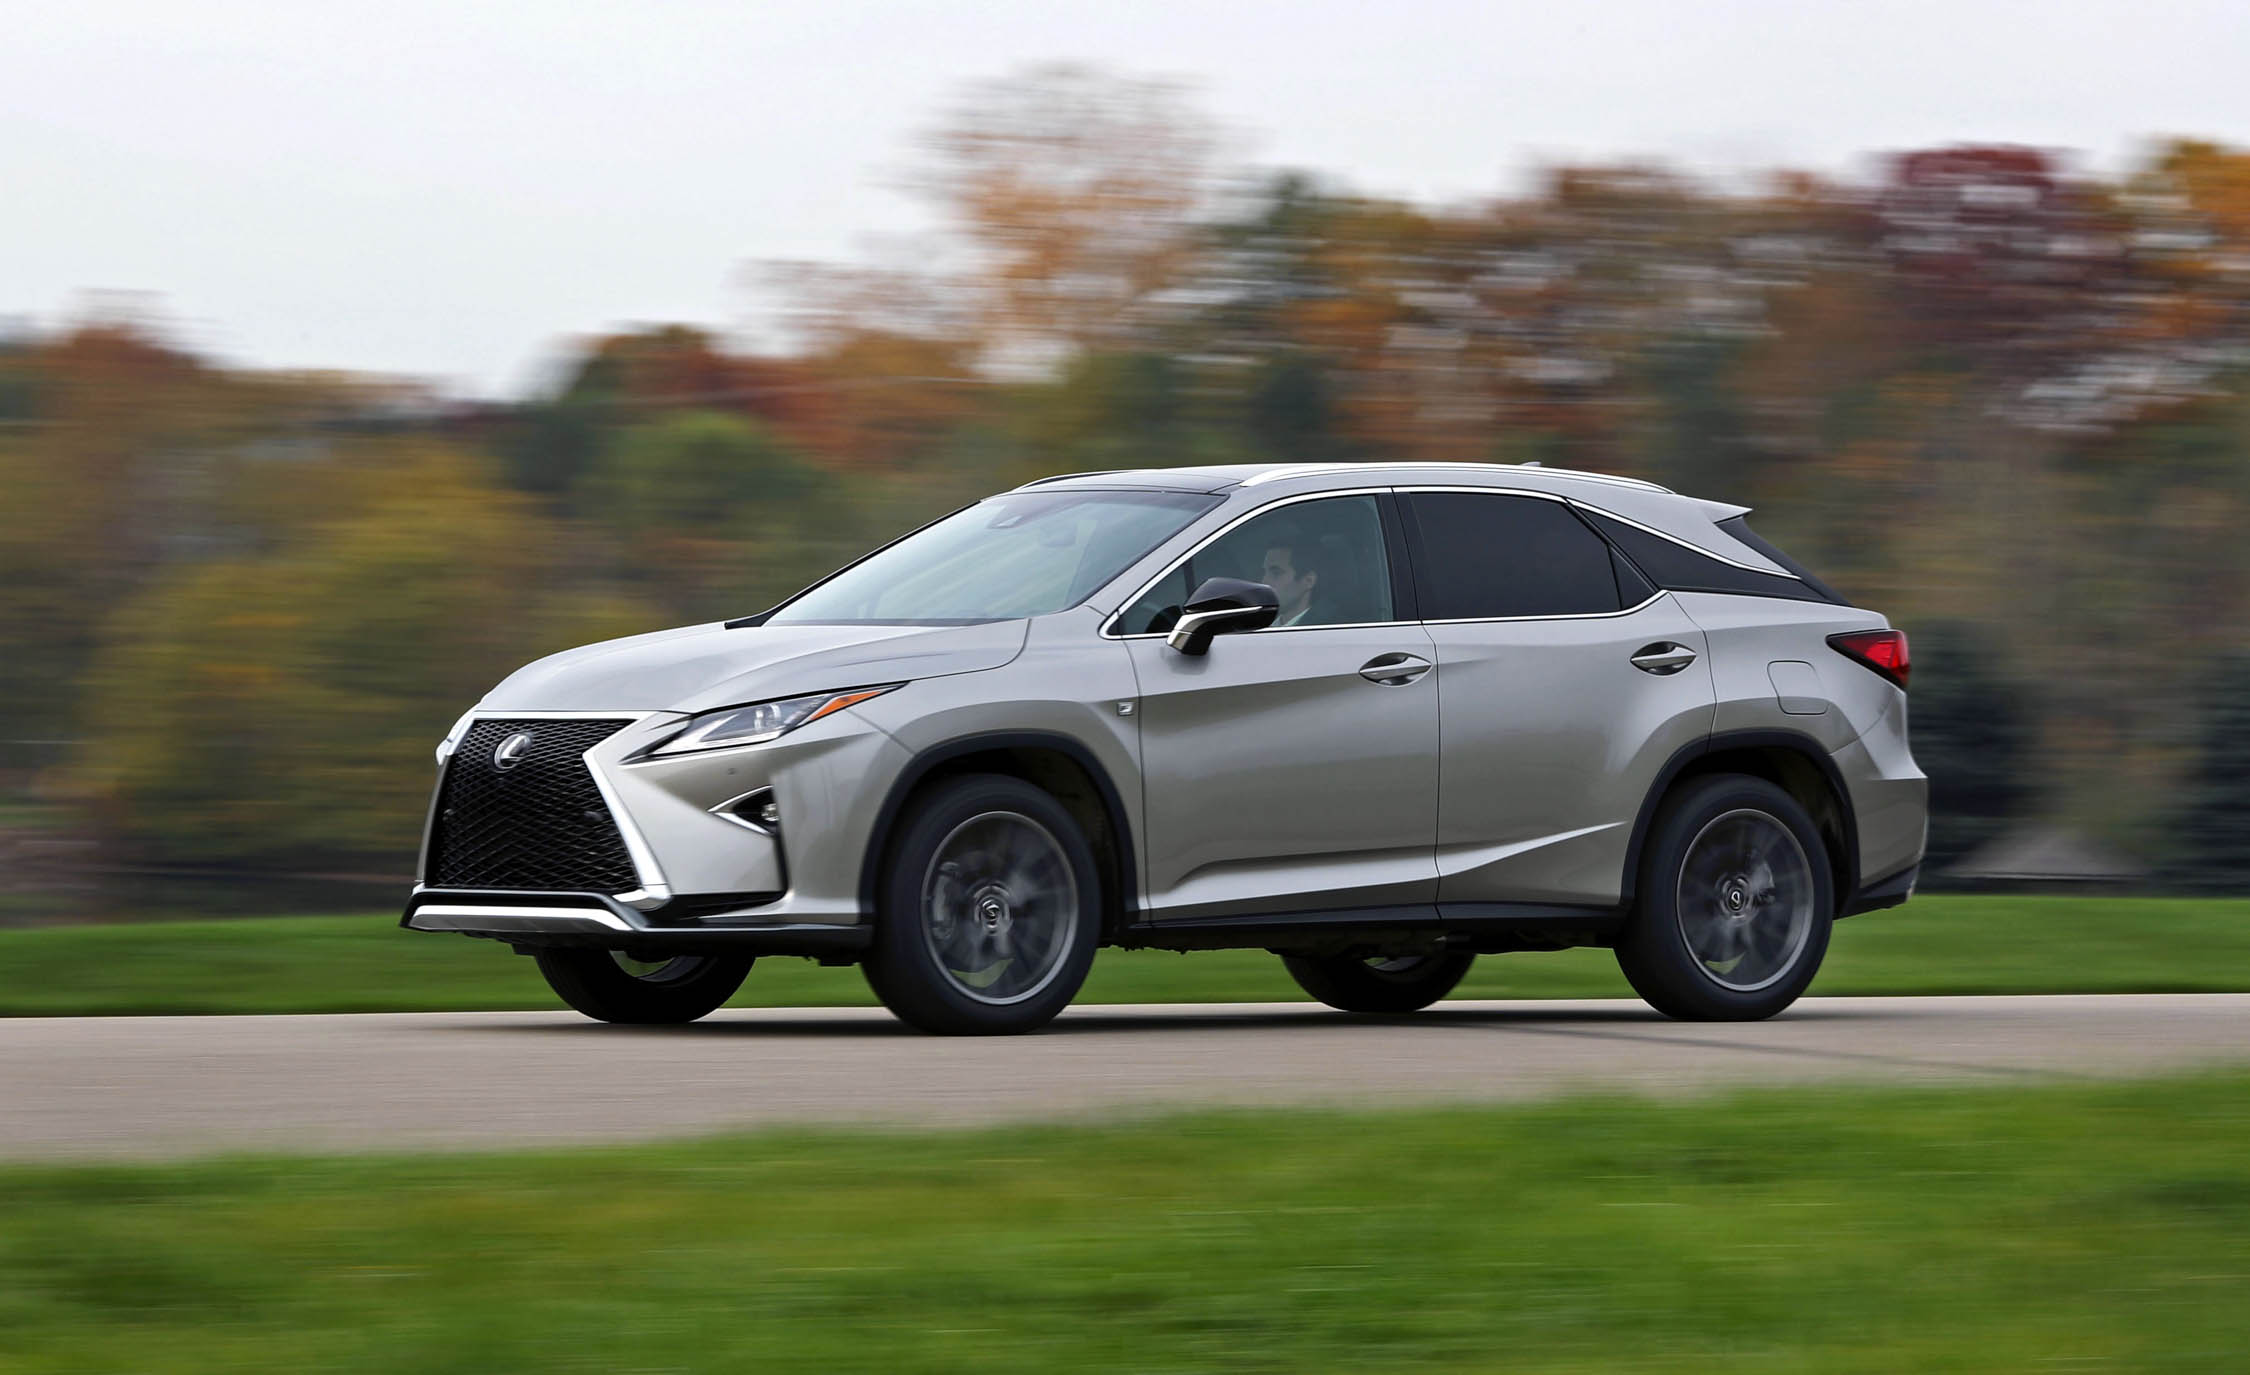 2017 Lexus RX350 F Sport (View 30 of 35)